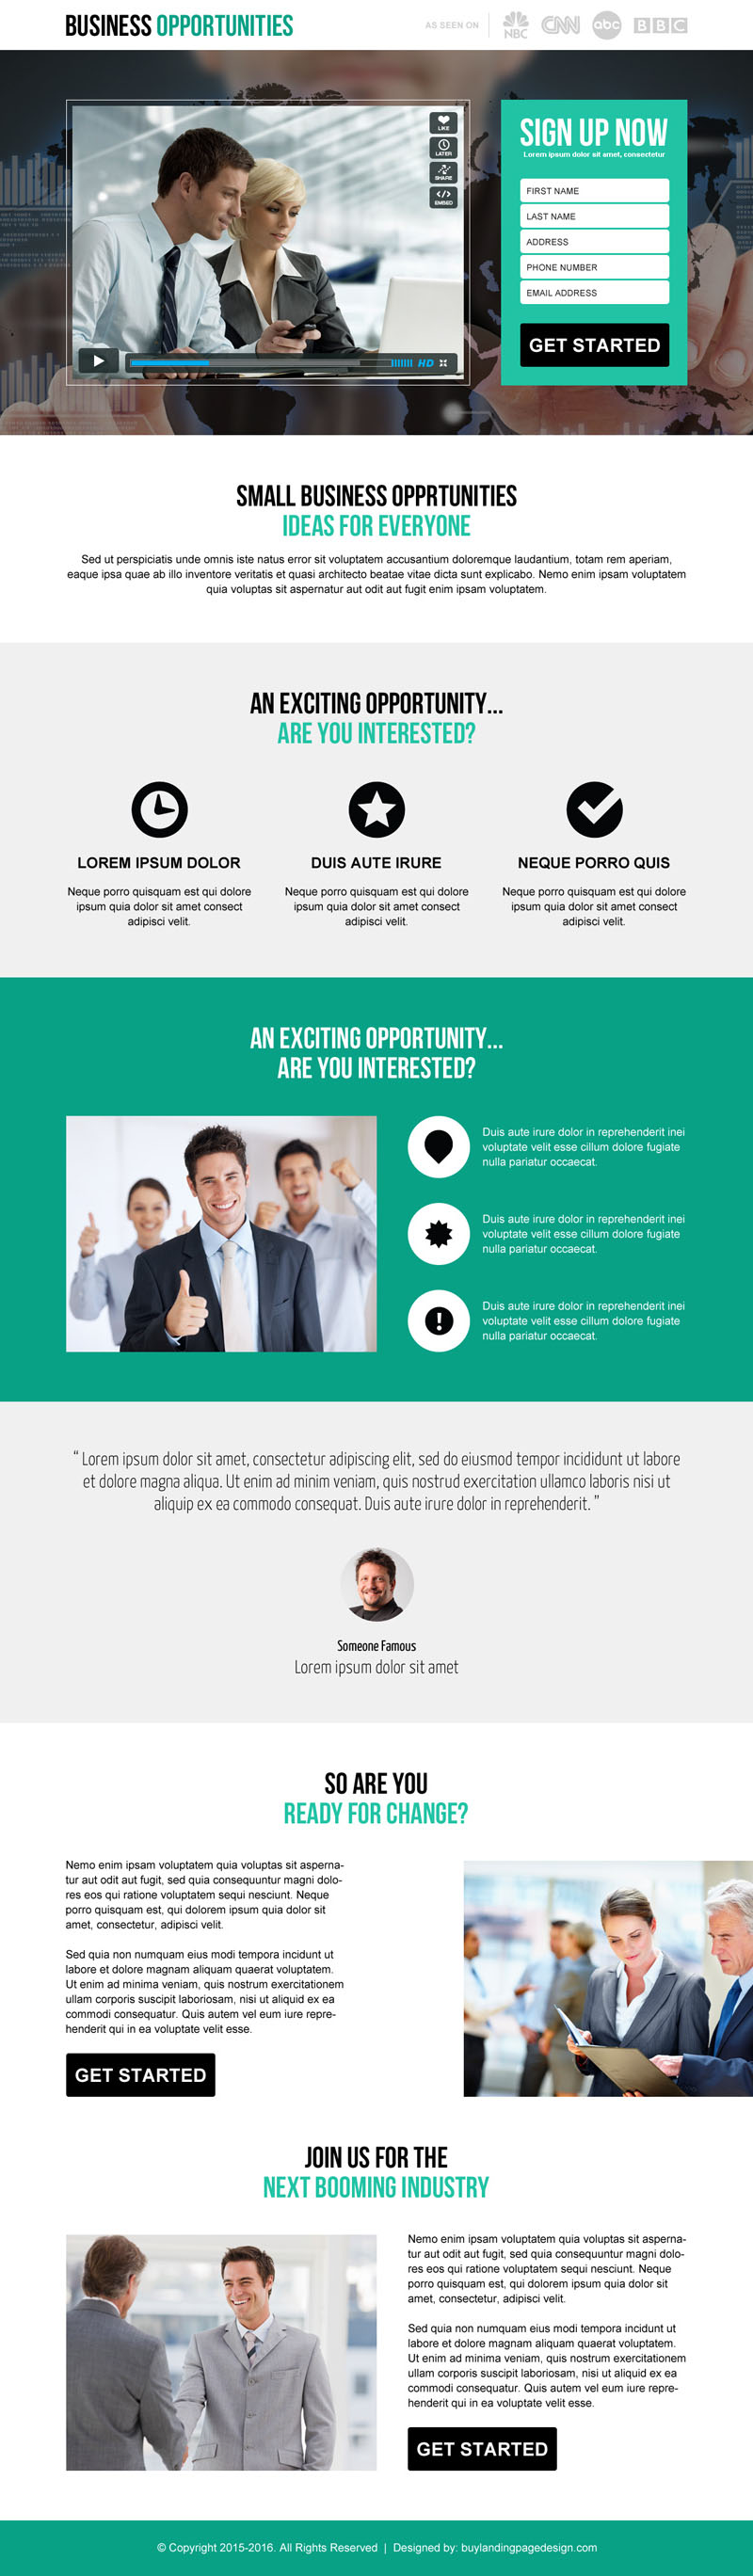 best-small-business-idea-lead-generation-landing-page-design-030